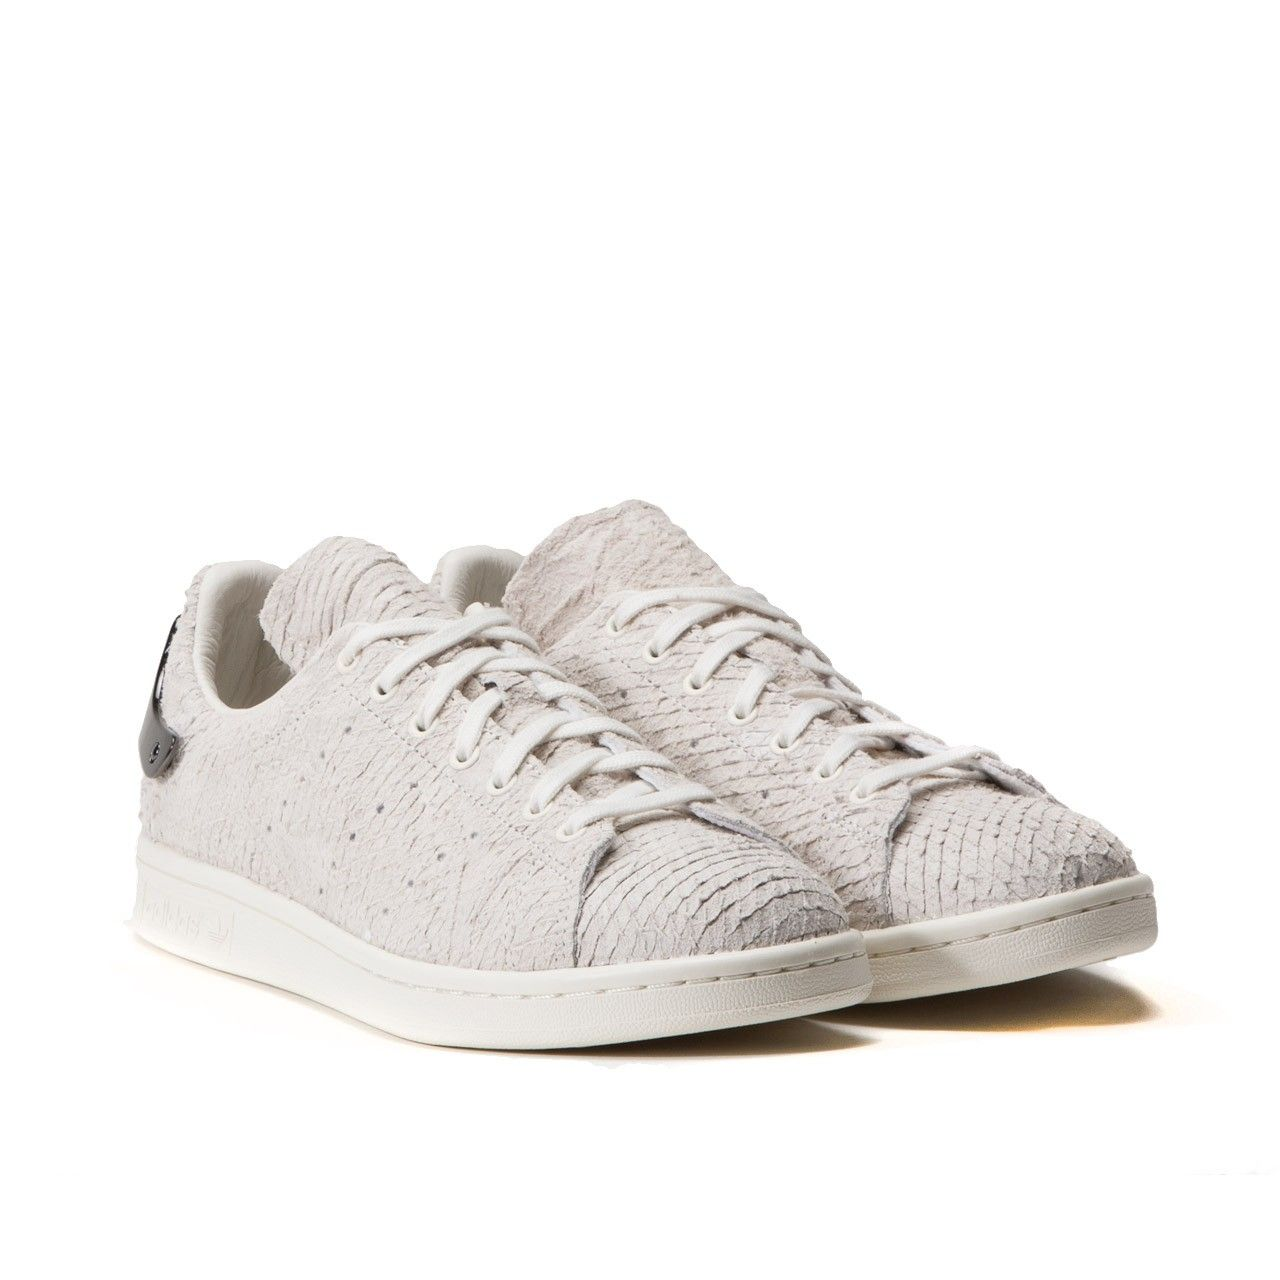 Presented as a women\u0027s only release, the new adidas Originals Stan Smith  \